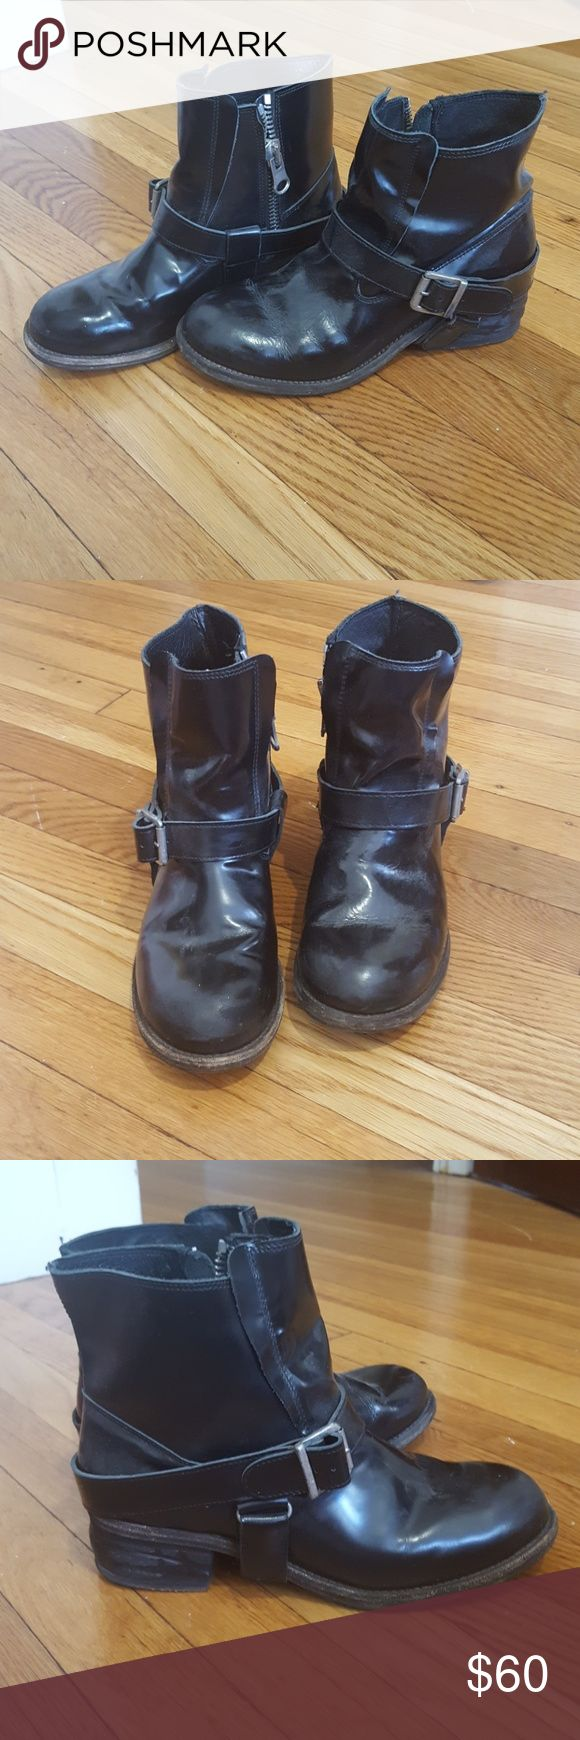 All Saints Jules biker boot size 40 ALL SAINTS  Black leather ankle boots size 40. Very gently worn black leather ankle boots with zips and hardware. Light wear on soles. I wear a US size 9 and these fit well with a sock. All Saints Shoes Combat & Moto Boots